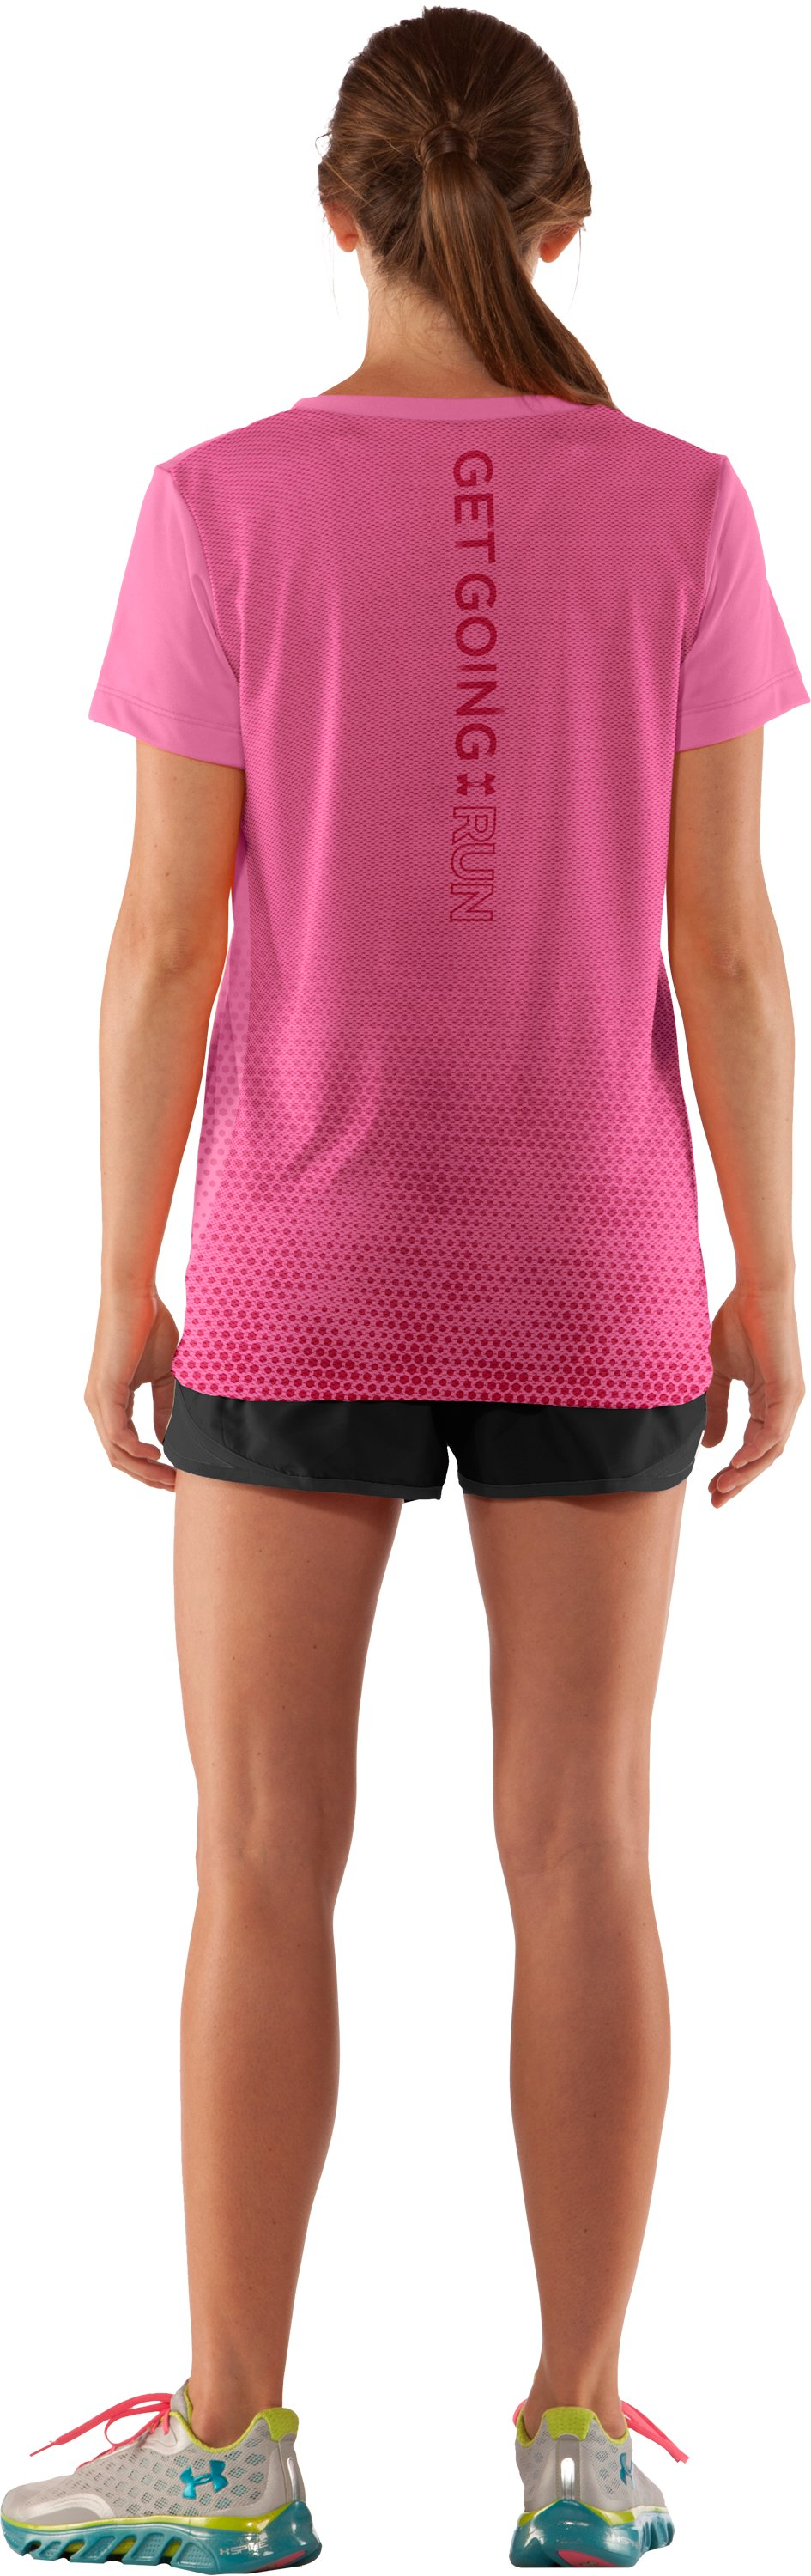 Women's Get Going V-Neck, Fluo Pink, Back